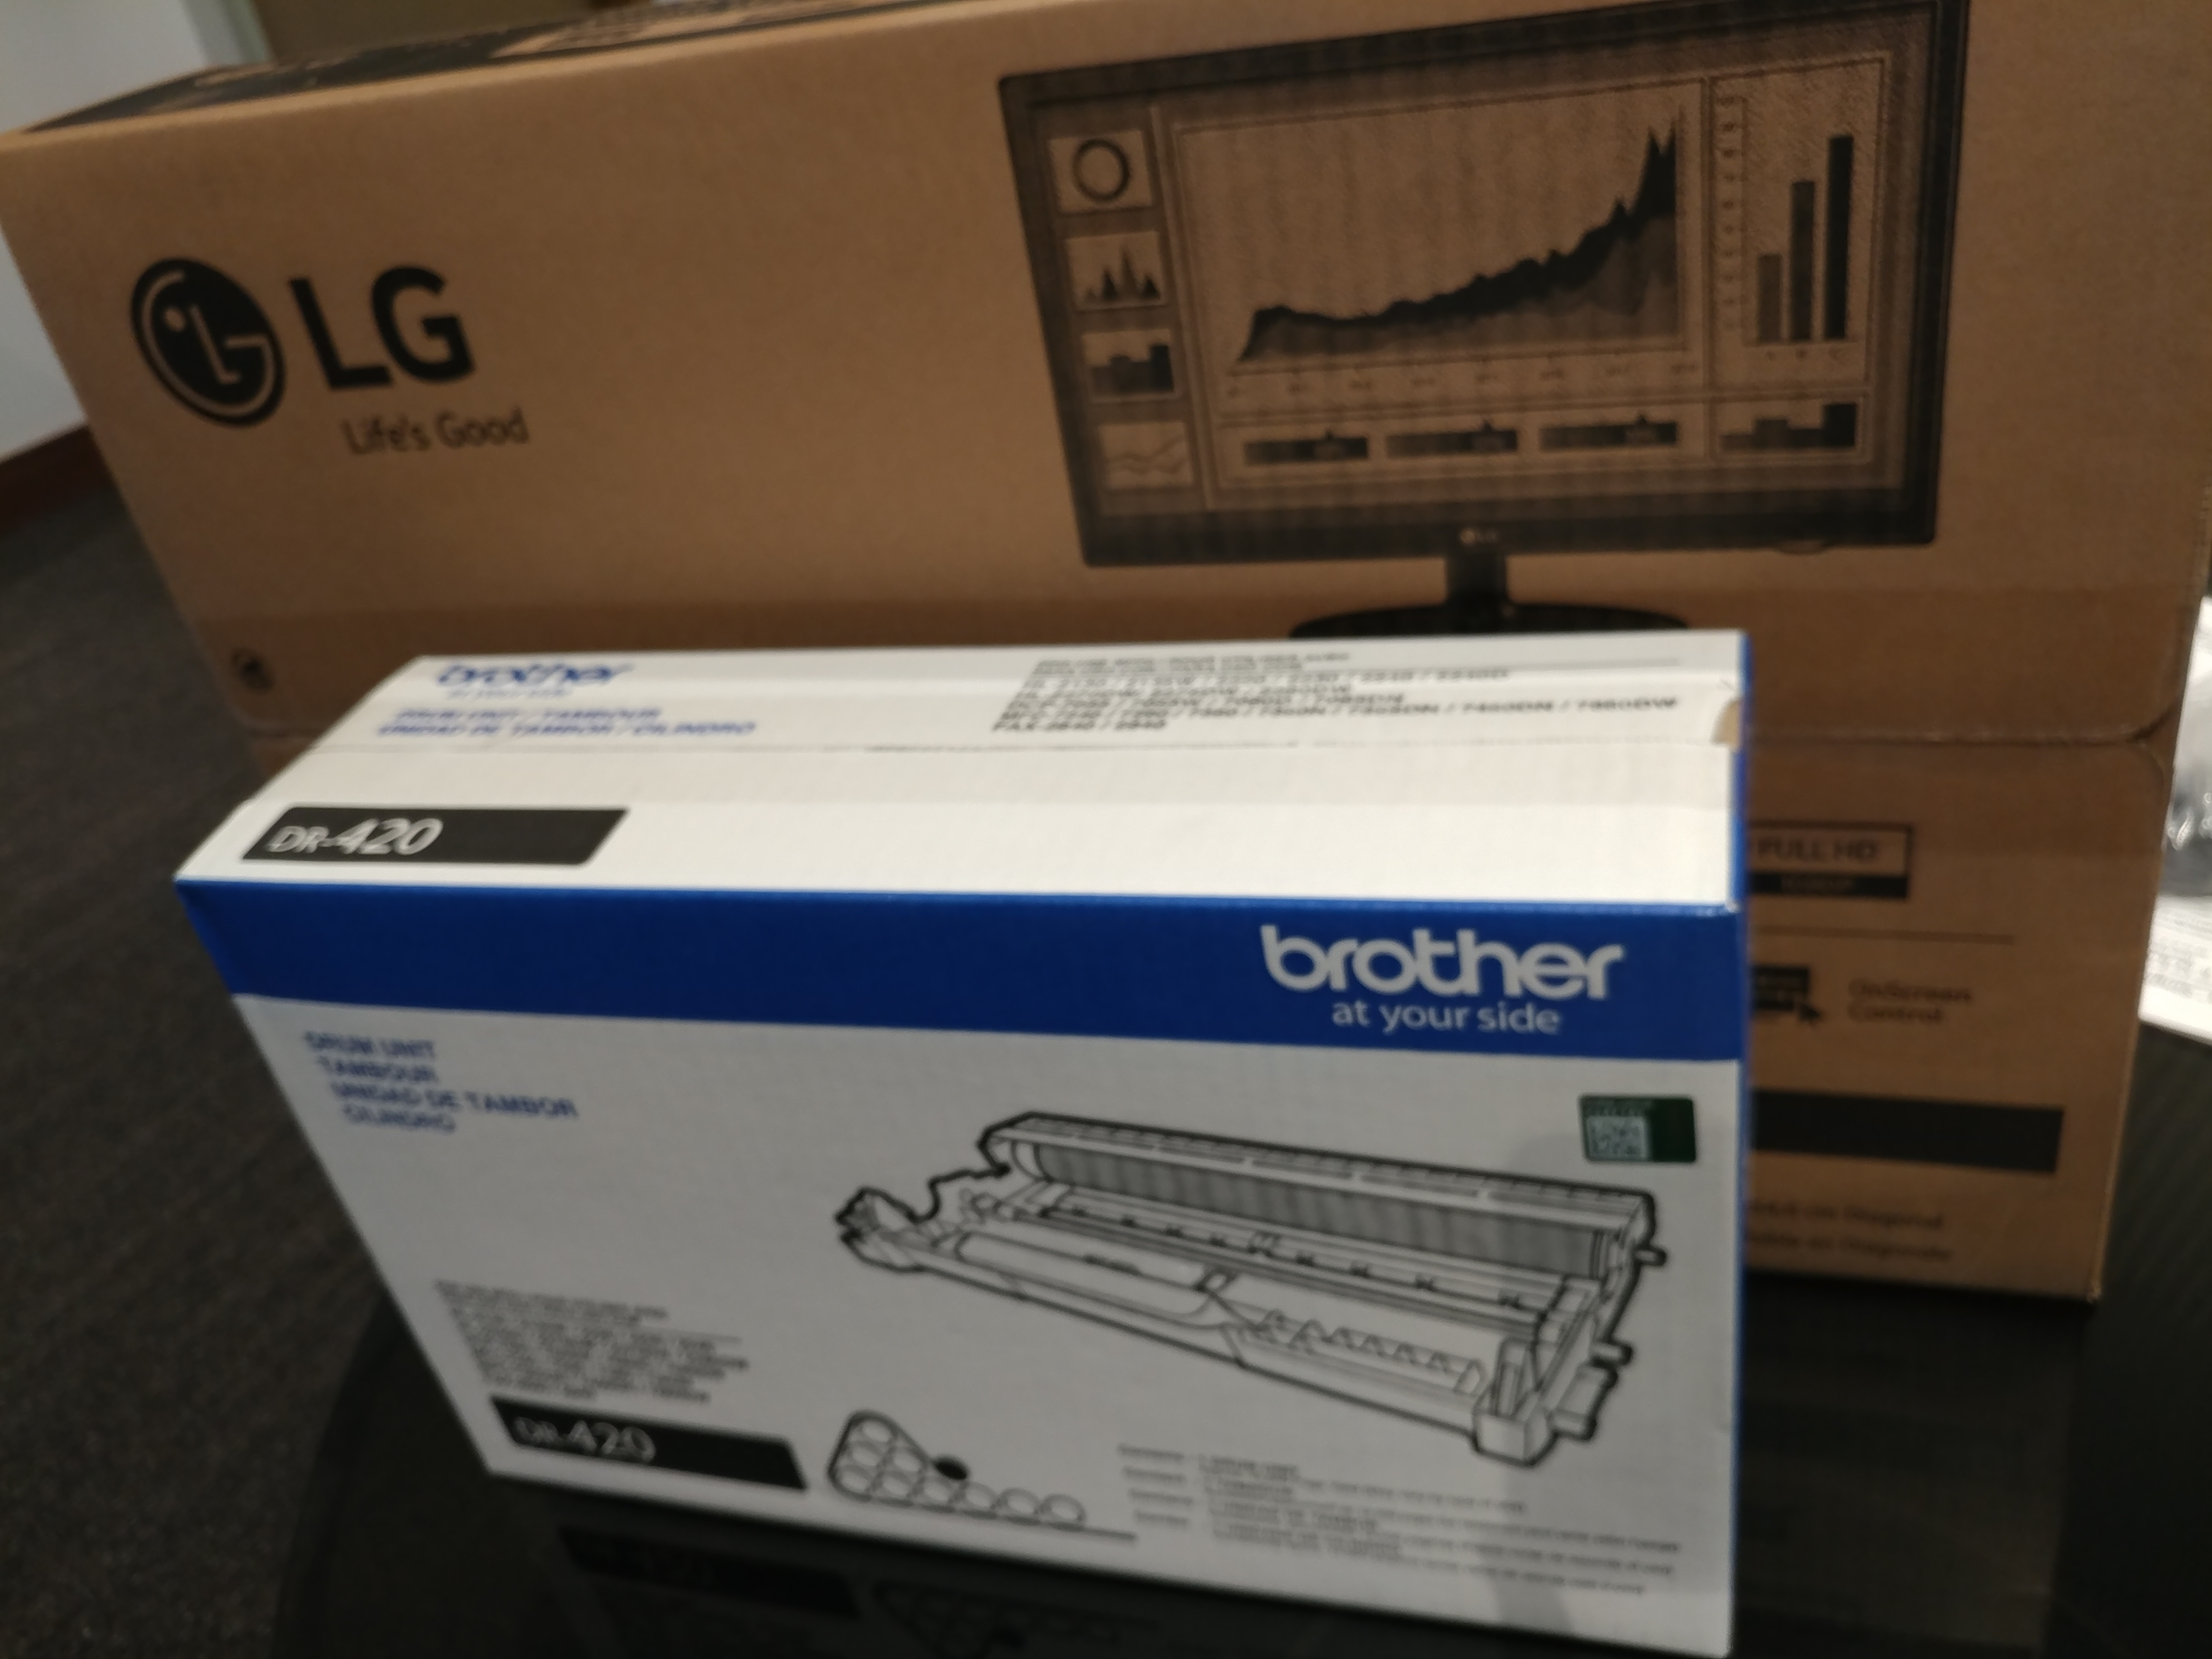 new monitor and replacement brother drum unit